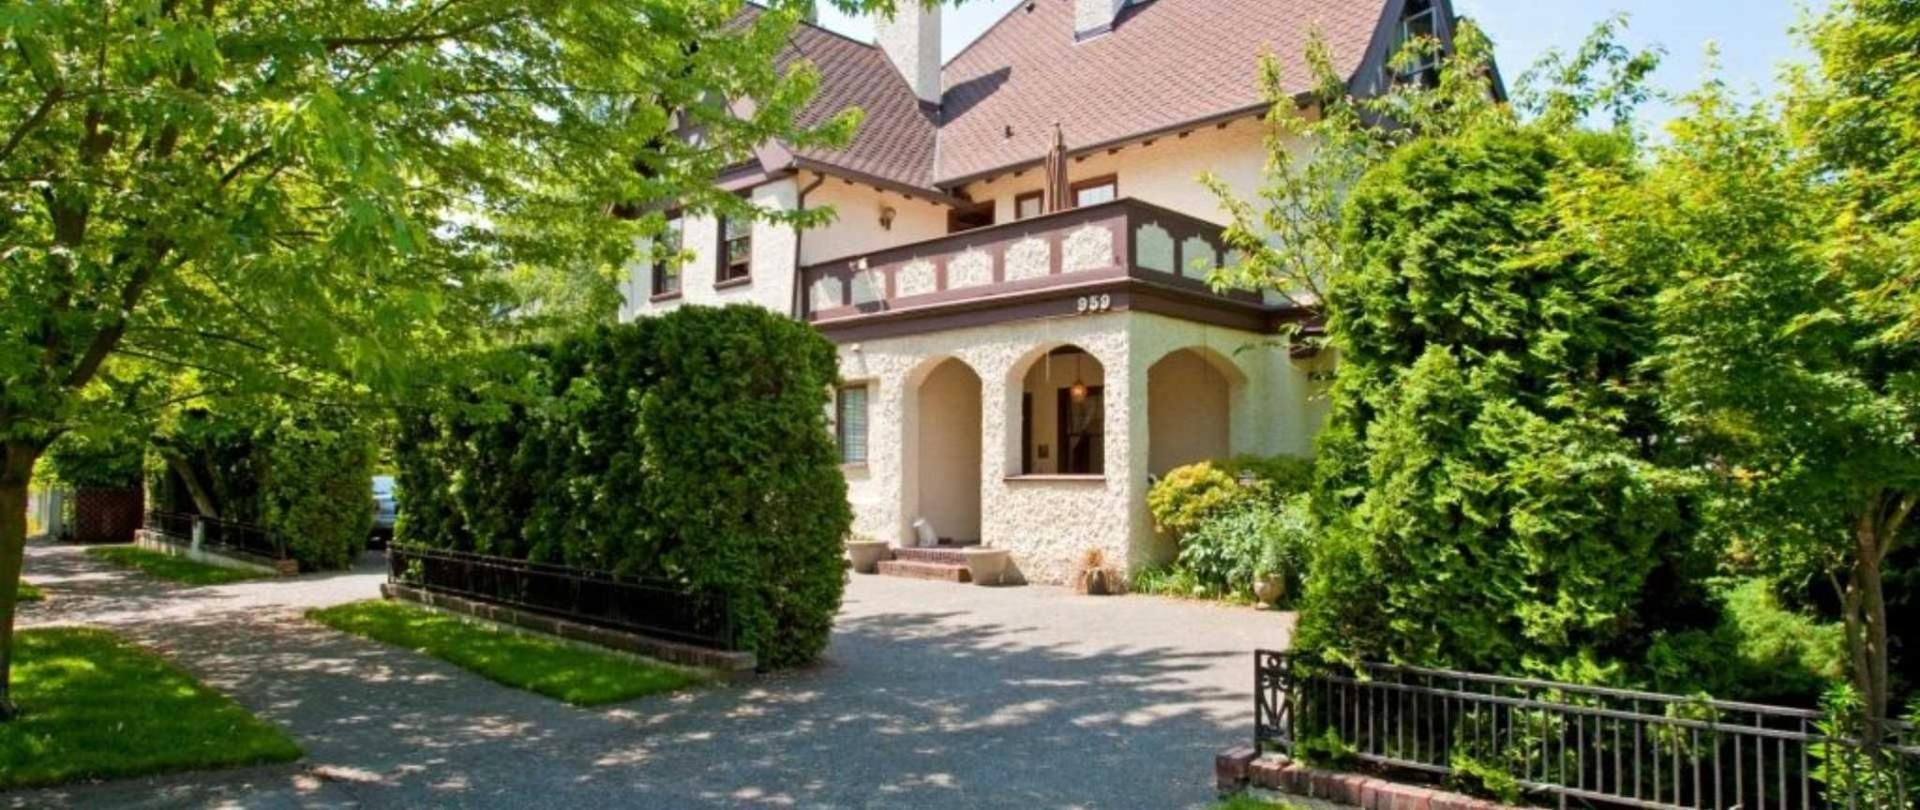 The Bacon Mansion Bed and Breakfast on Seattle's Capitol